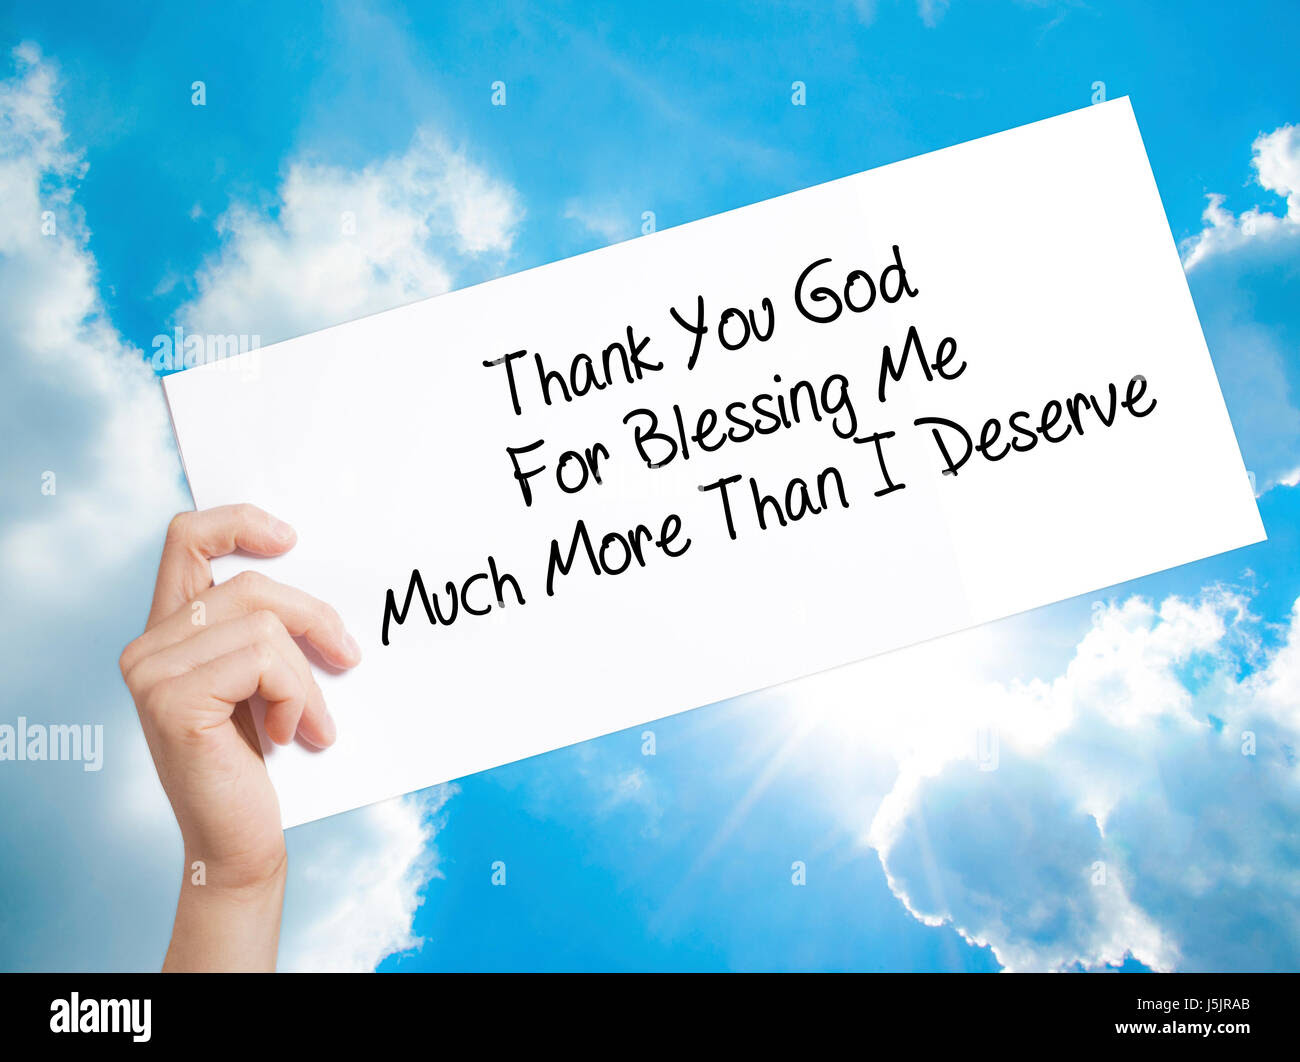 Thank You God For Blessing Me Much More Than I Deserve Sign On White